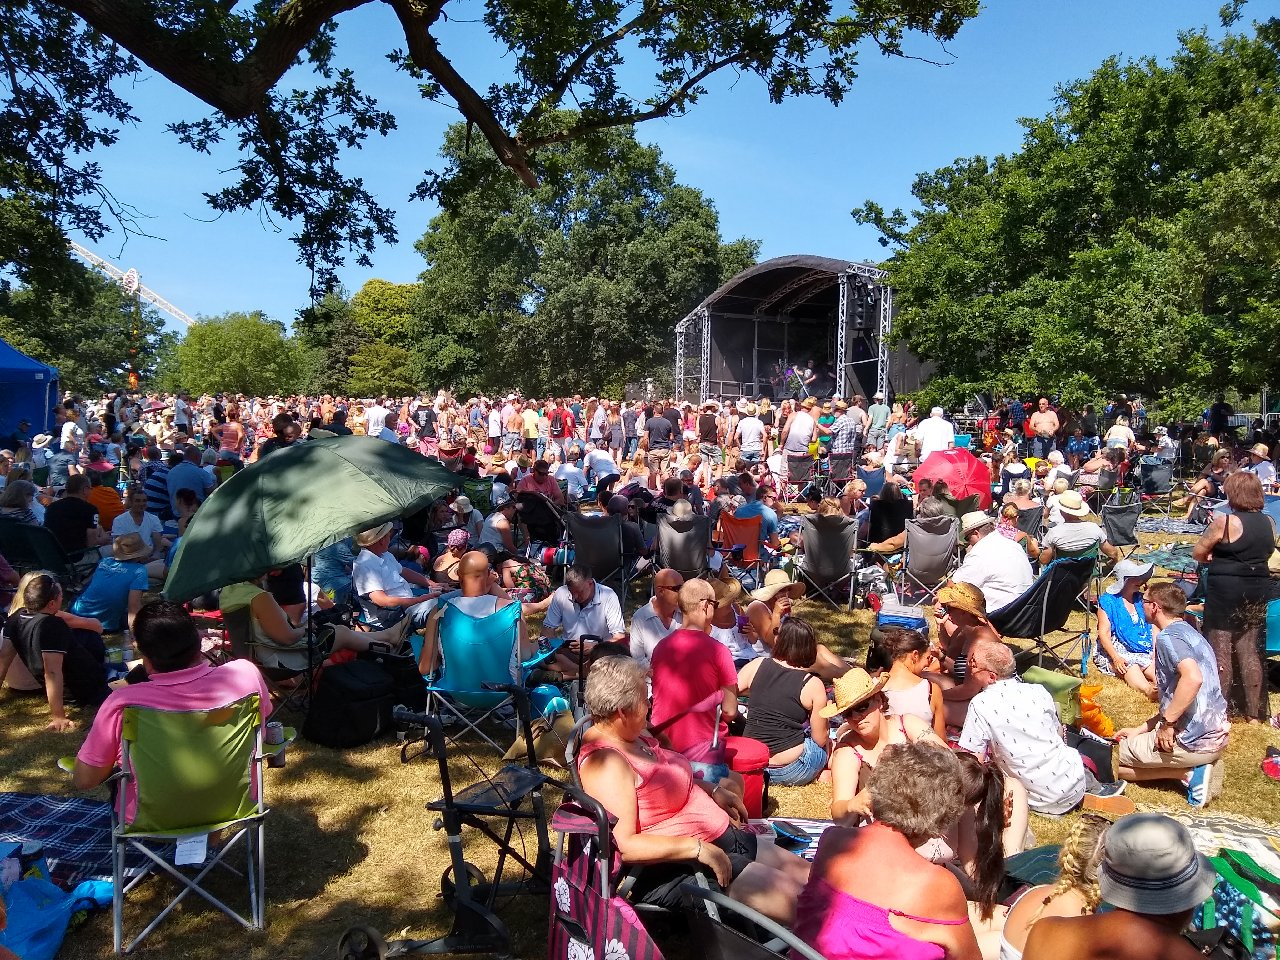 A crowd watching a stage at Ipswich Music Day